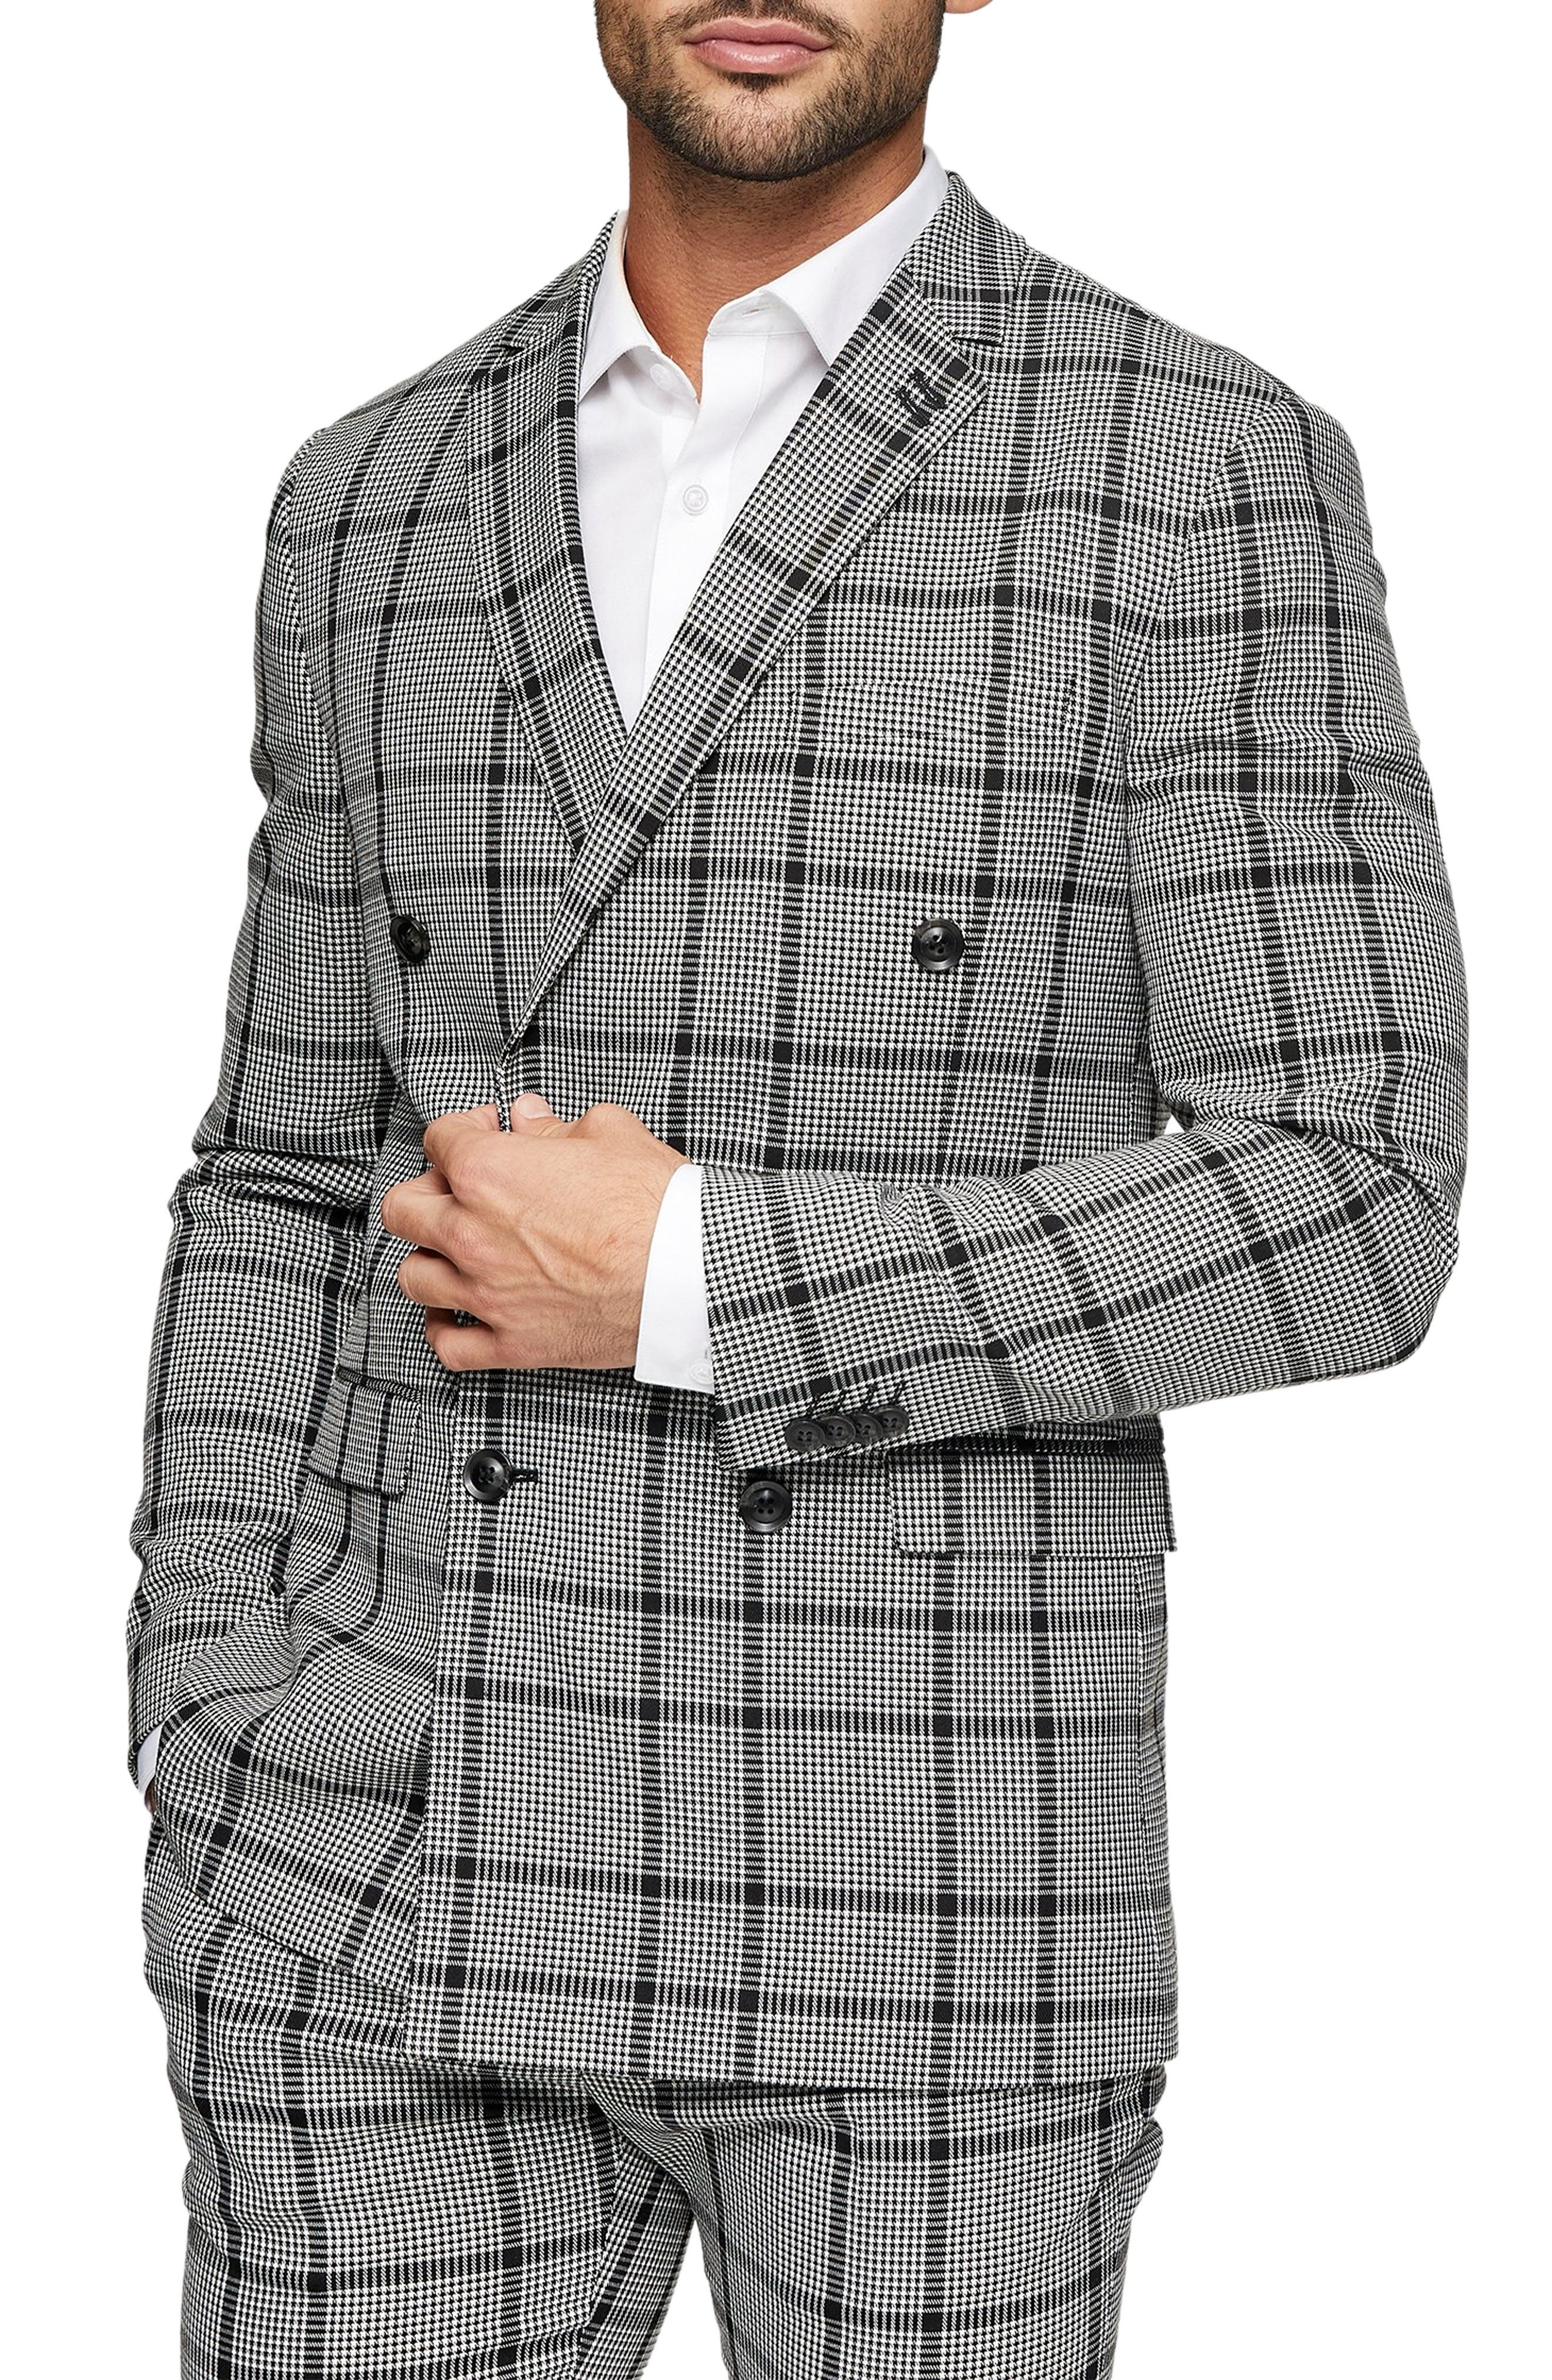 1960s Mens Suits | Mod, Skinny, Nehru Mens Topman Skinny Fit Double-Breasted Check Suit Jacket Size 34R - Grey $195.00 AT vintagedancer.com